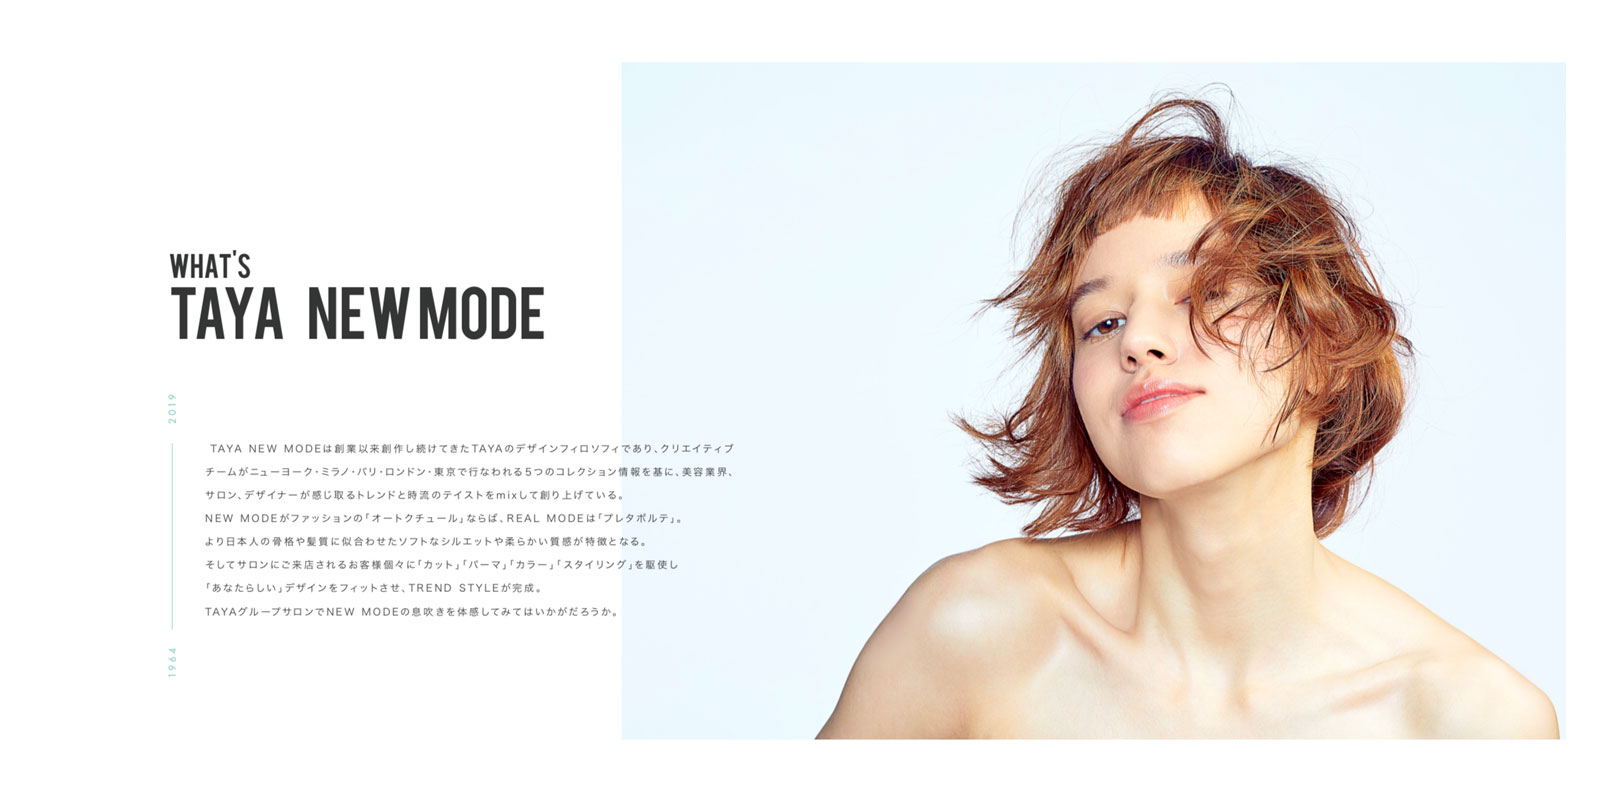 TAYA NEW MODE 2019 「trace」